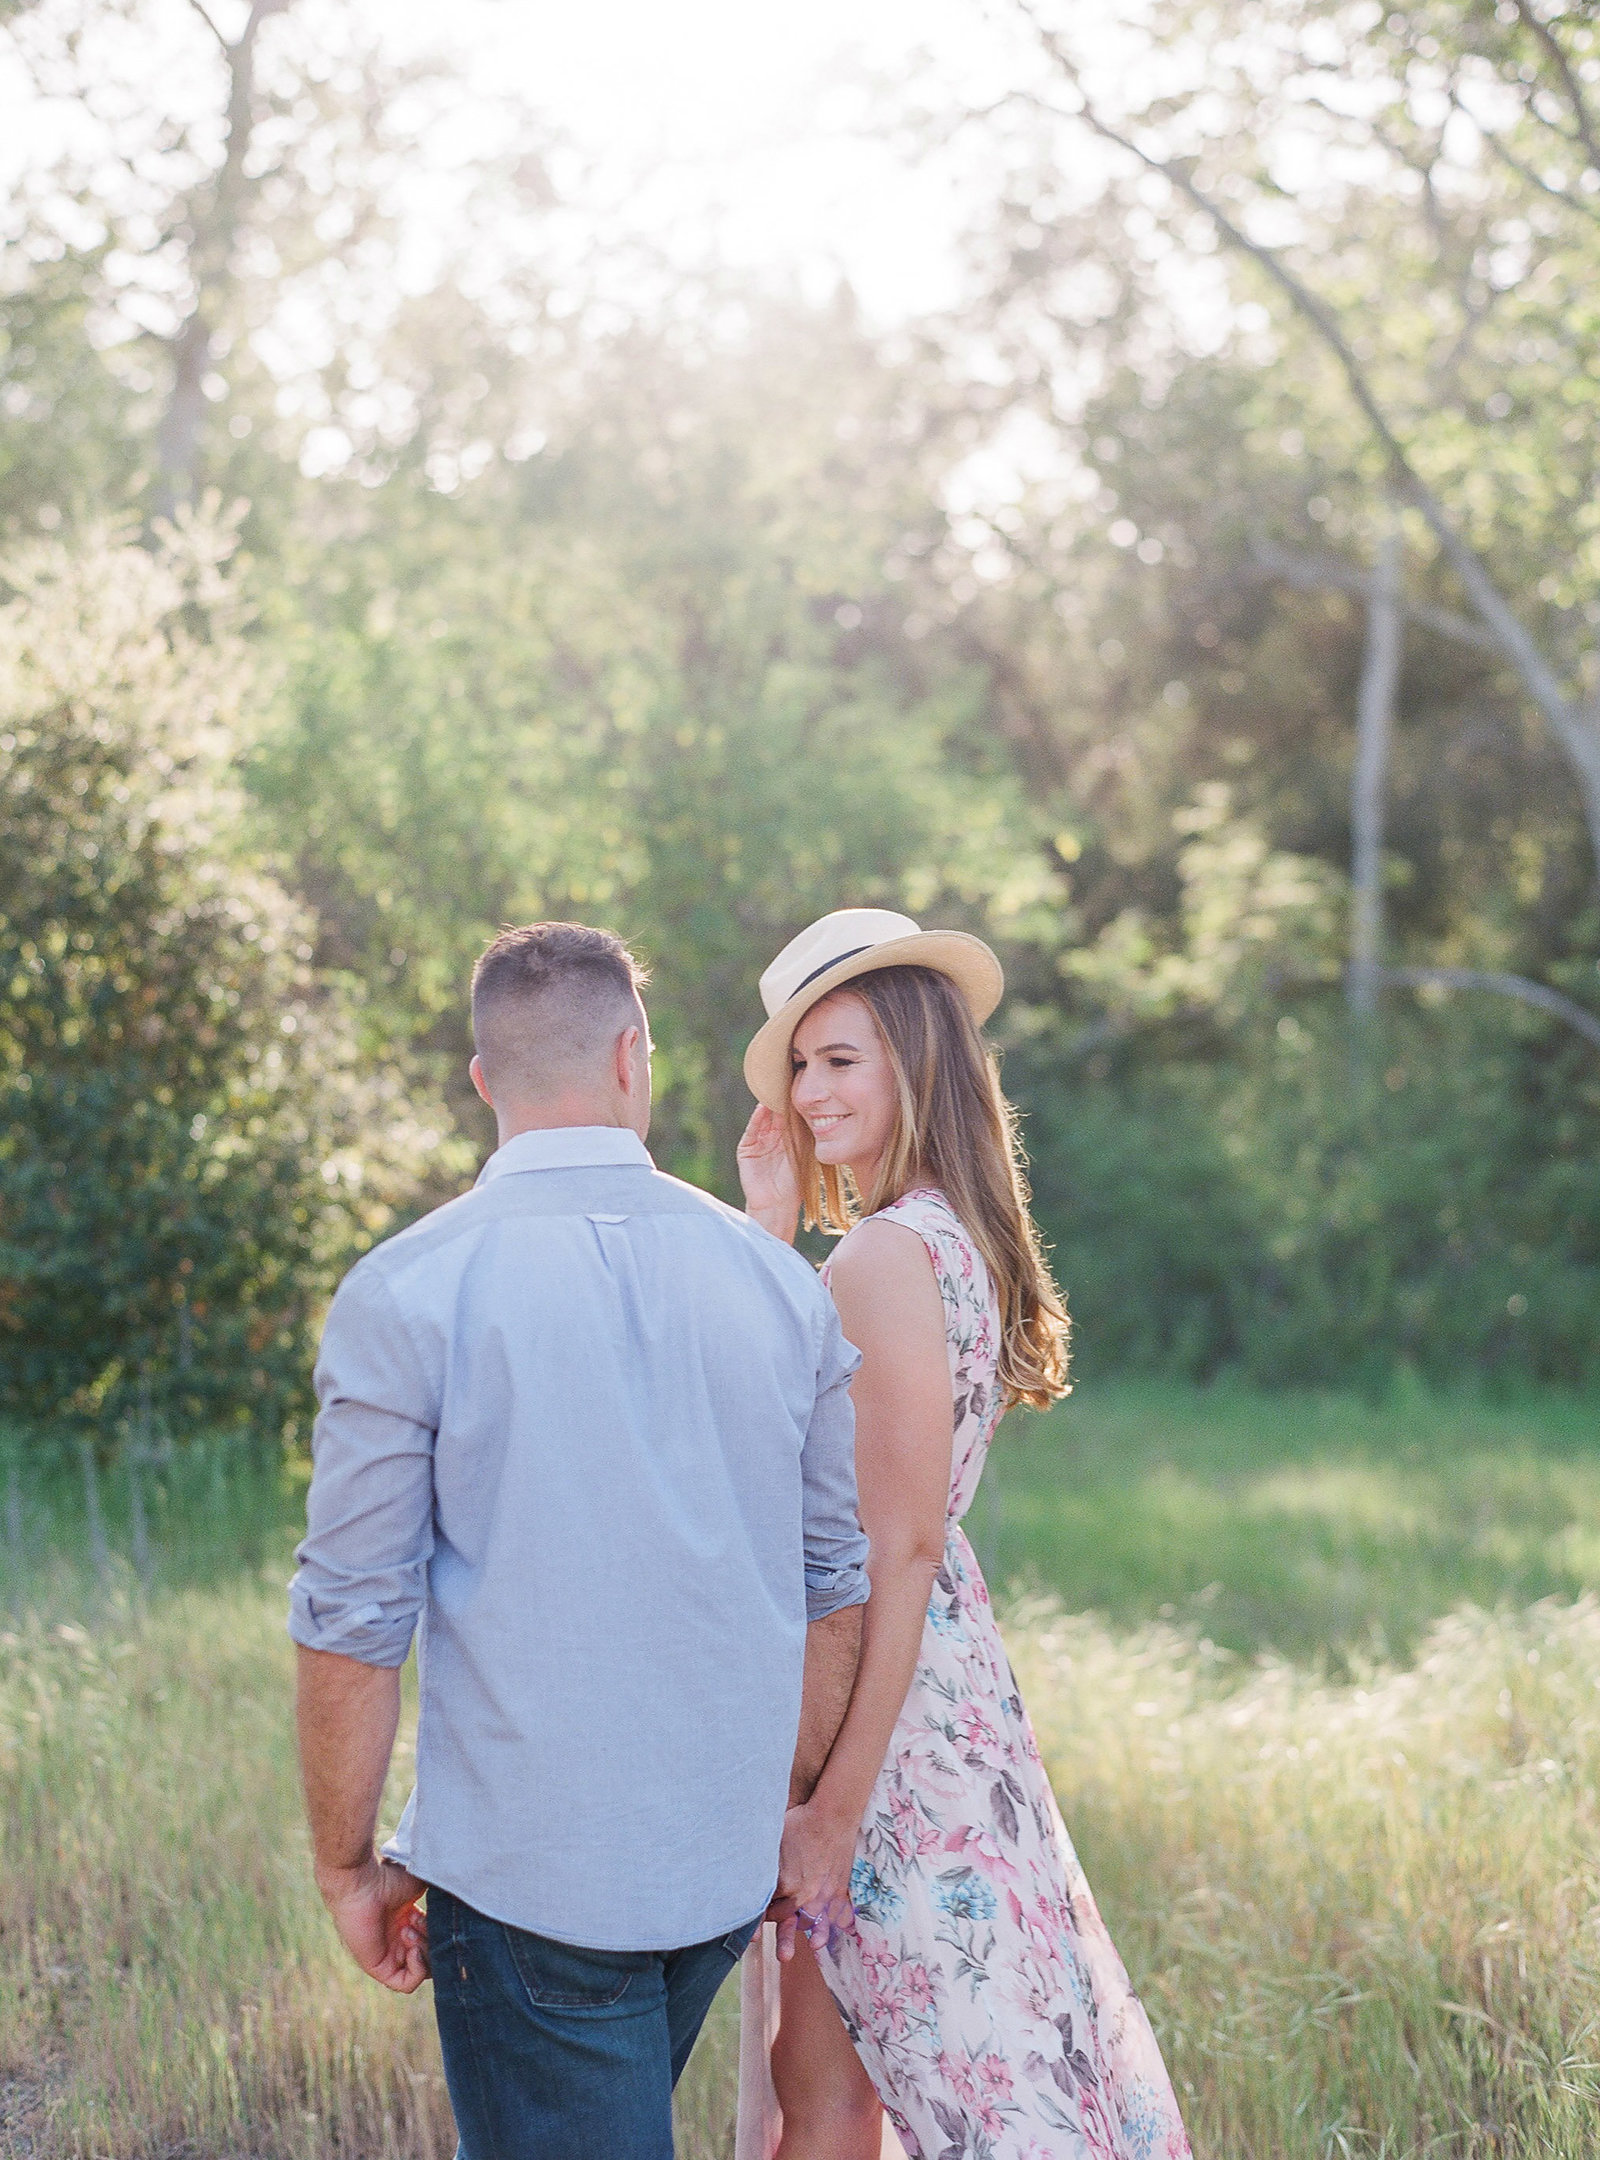 Pura-Soul-Photo-Rollin-Engagement-Film-38